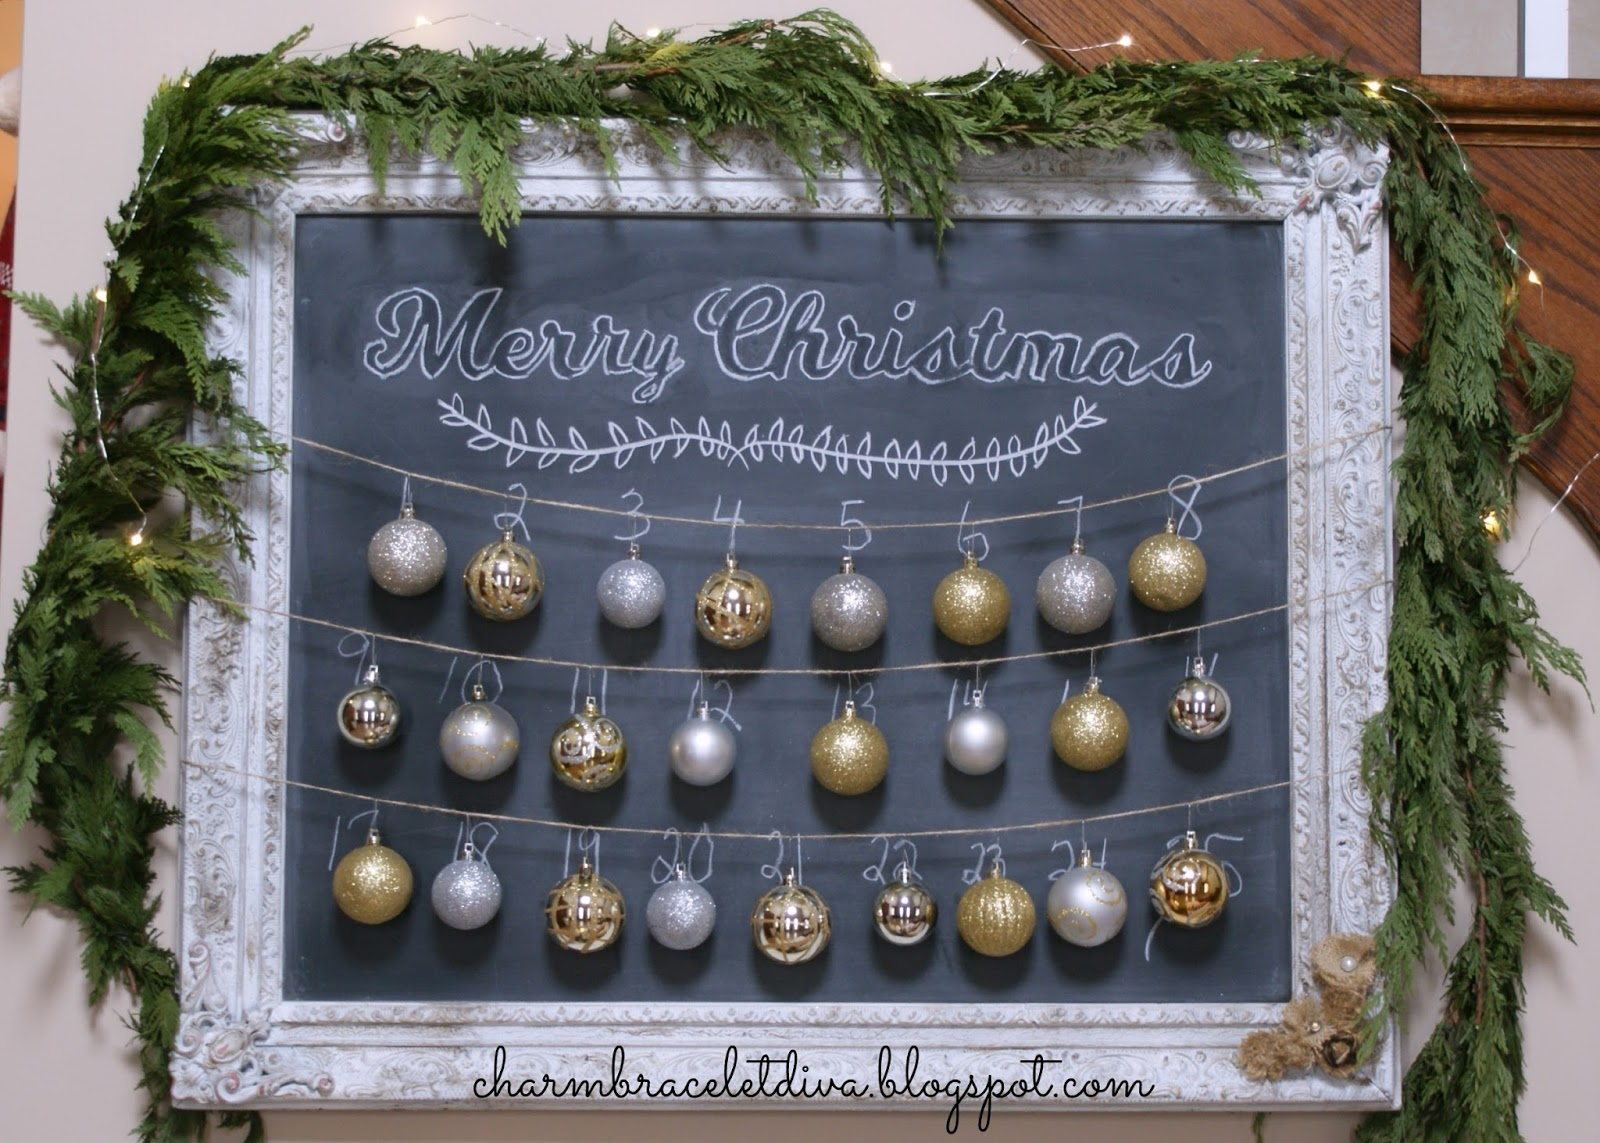 Fun Christmas Advent Calendar Ideas - Clean and Scentsible